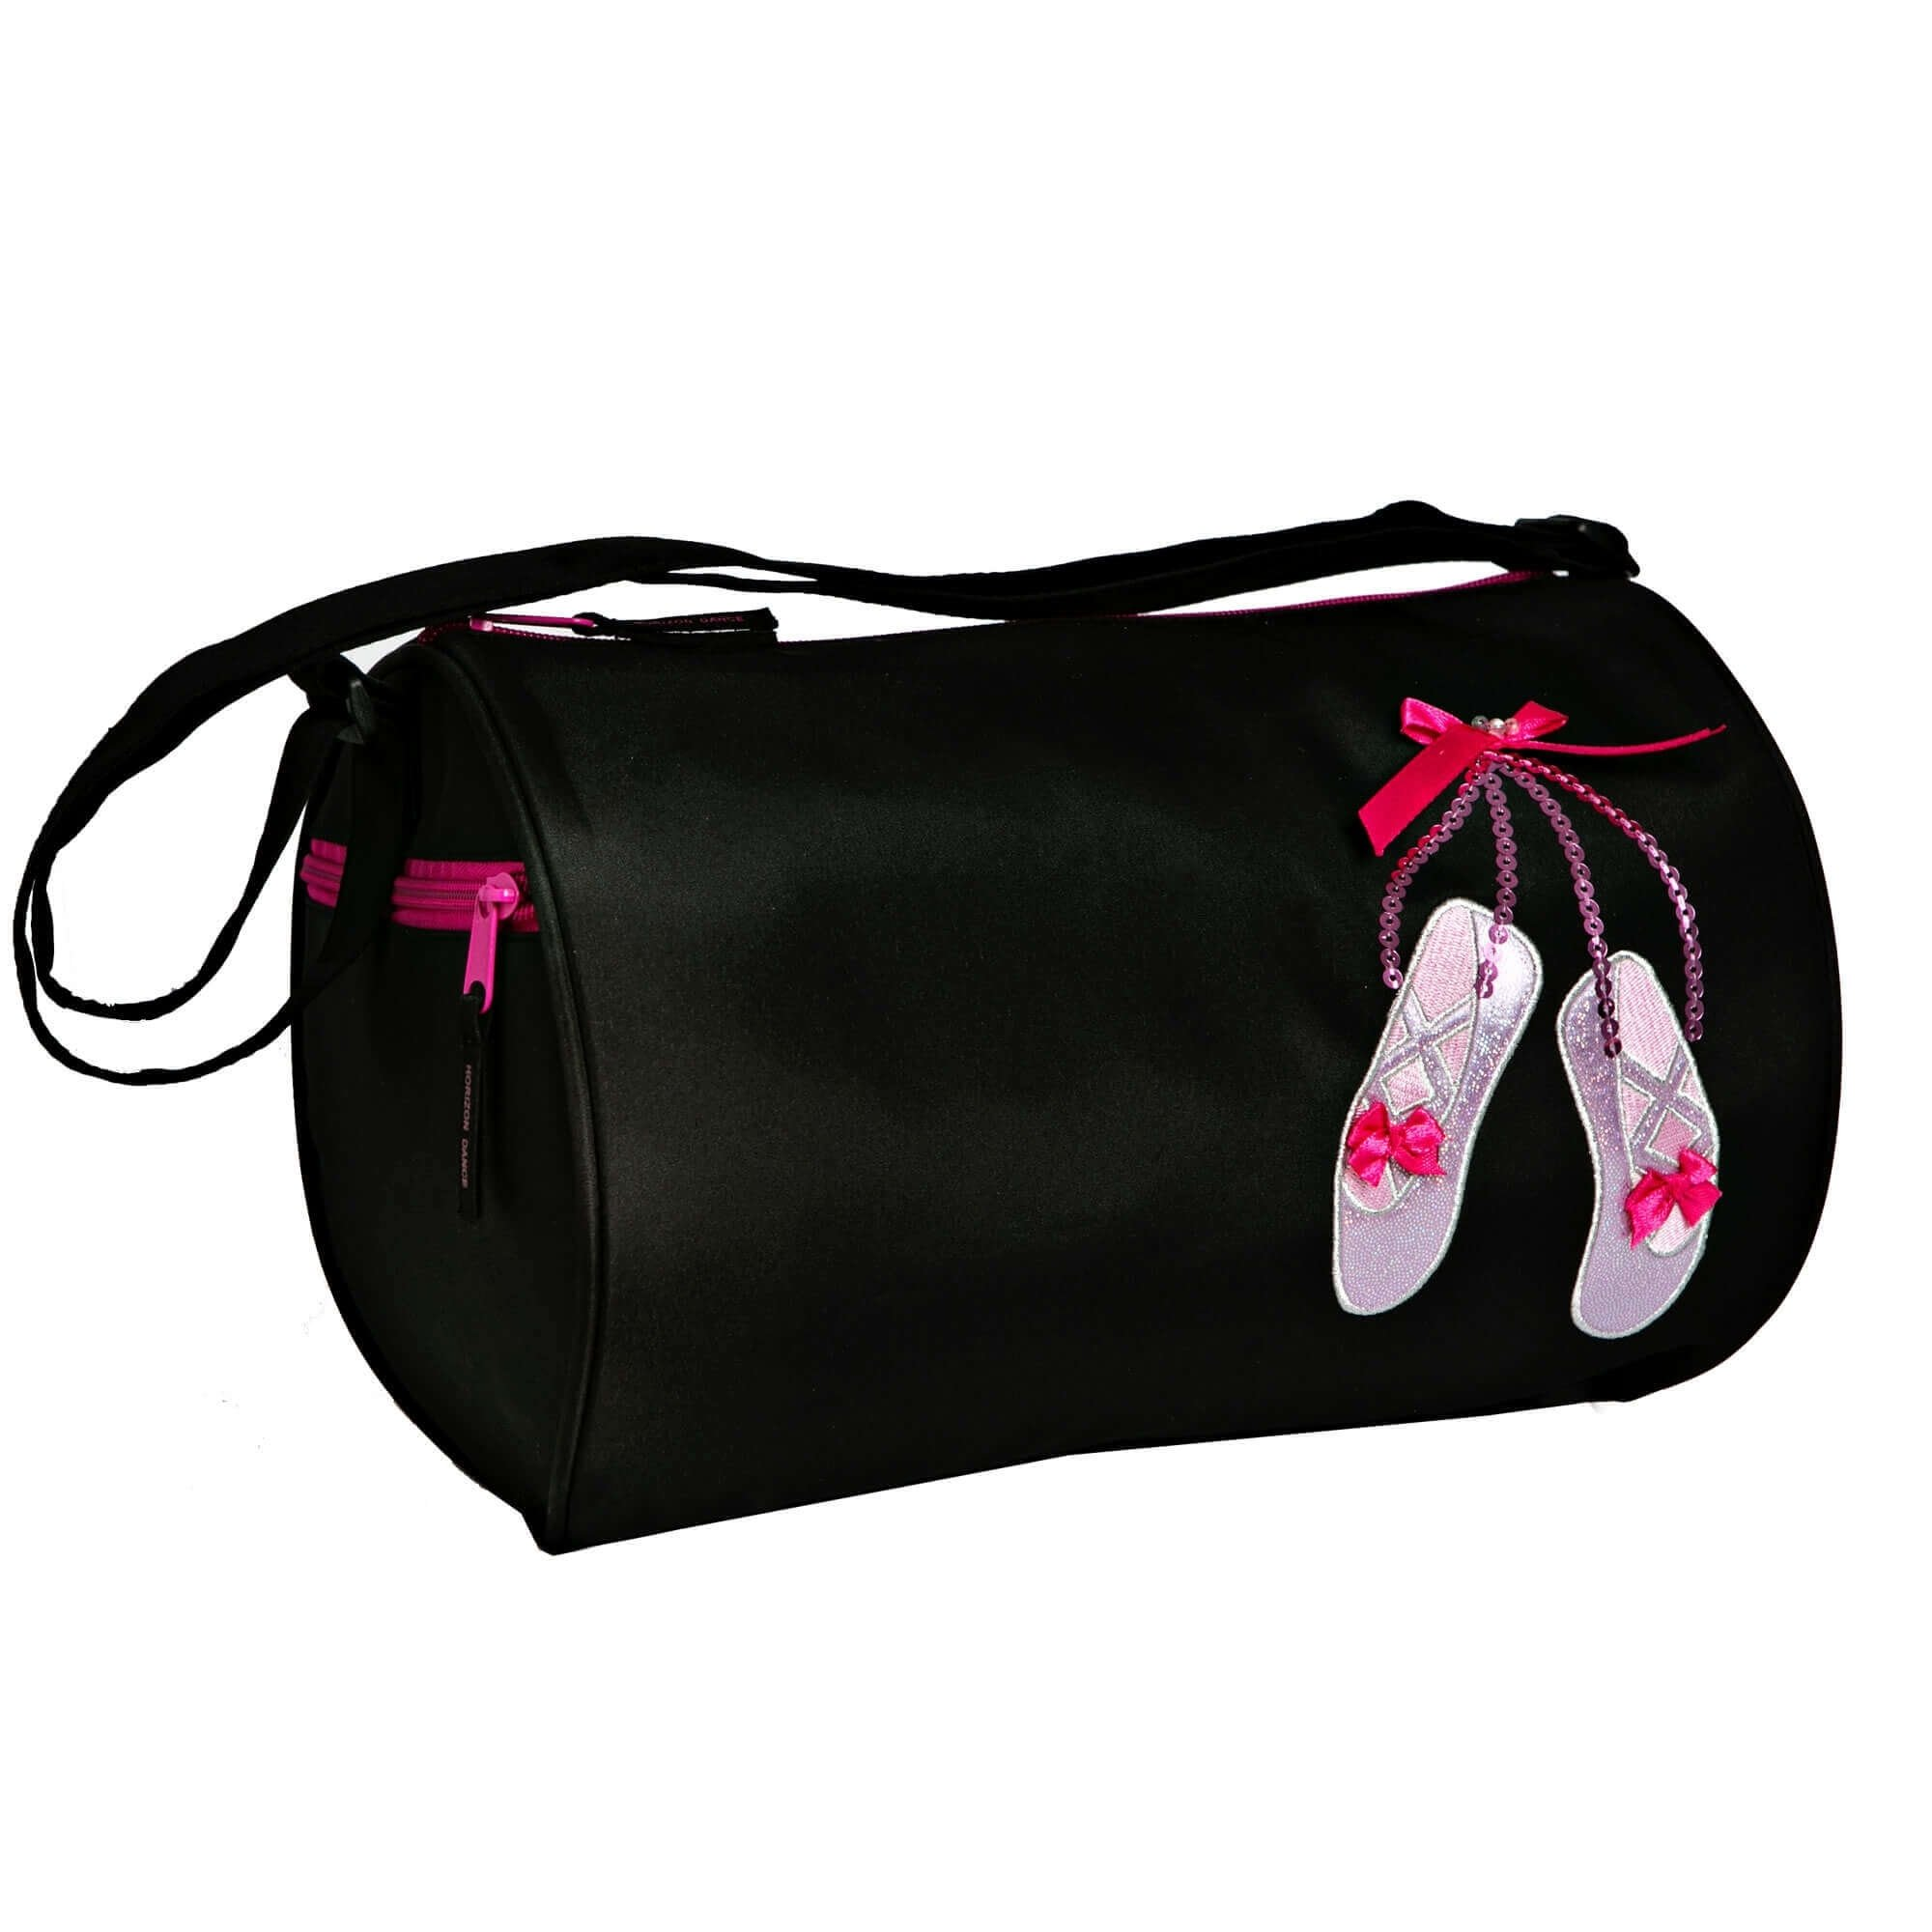 Horizon Dance Sparkle Duffel